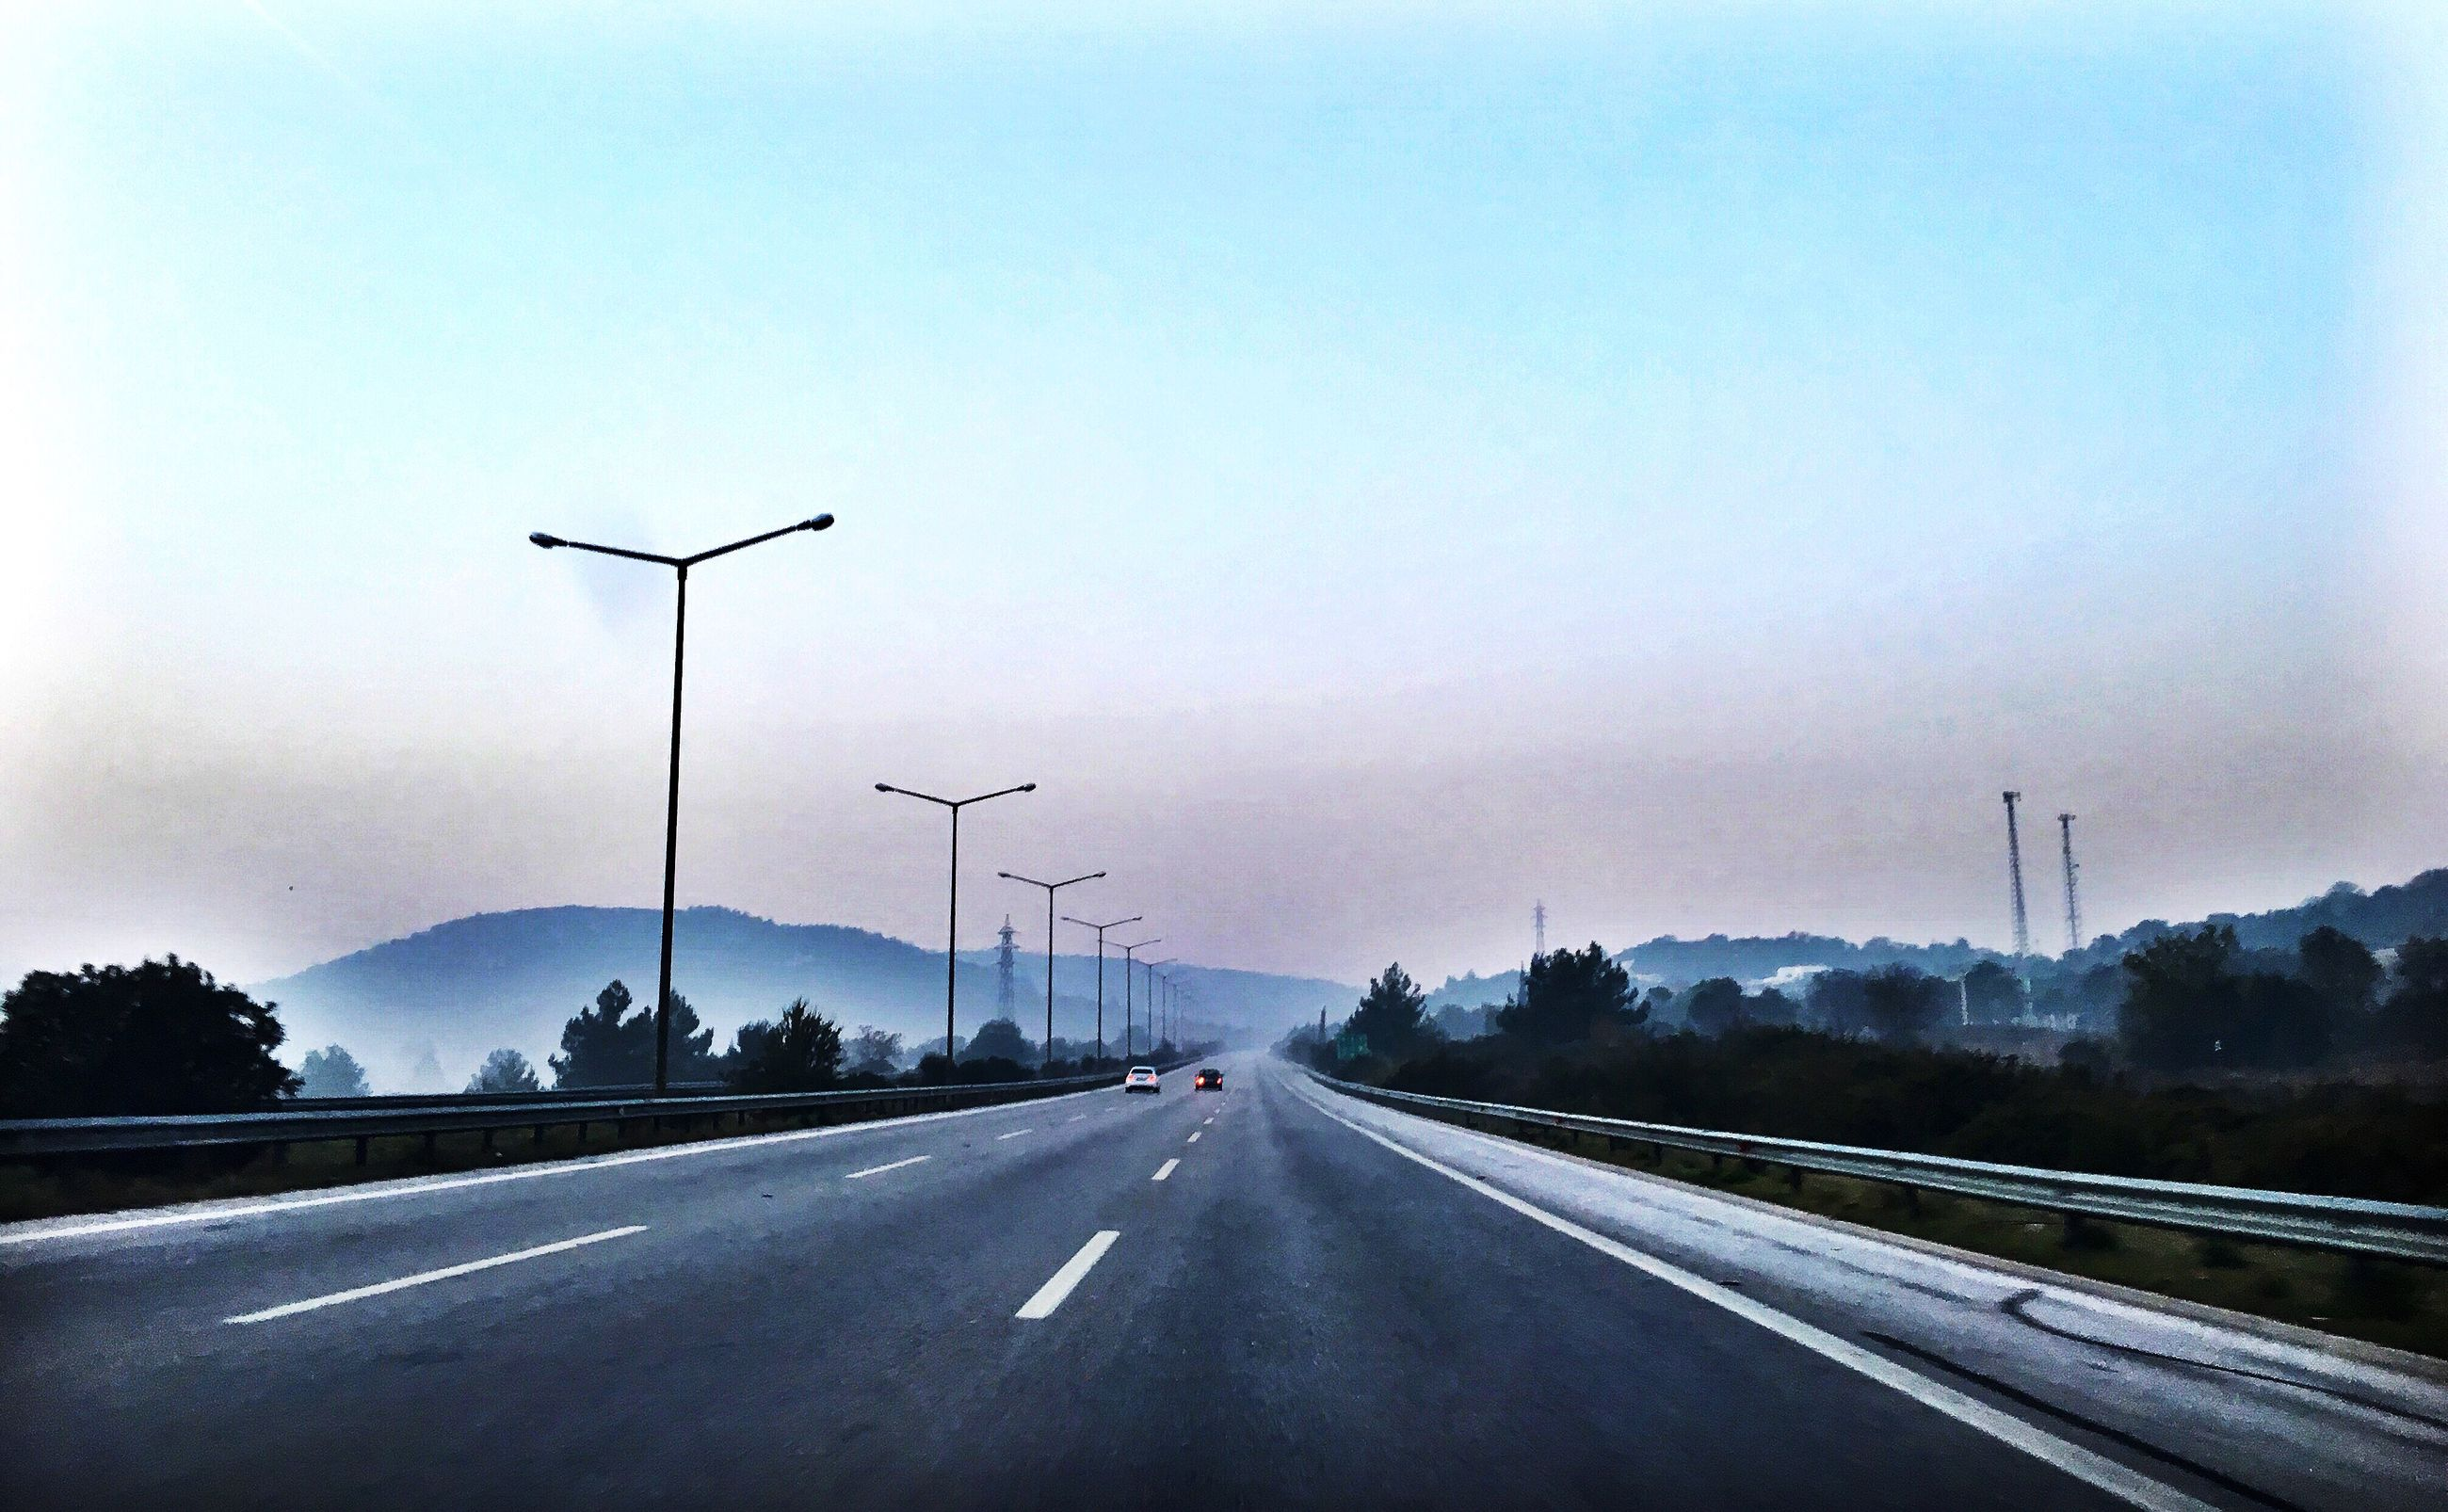 the way forward, road, transportation, street light, road marking, diminishing perspective, vanishing point, sky, empty, clear sky, street, copy space, empty road, car, lighting equipment, country road, road sign, outdoors, long, highway